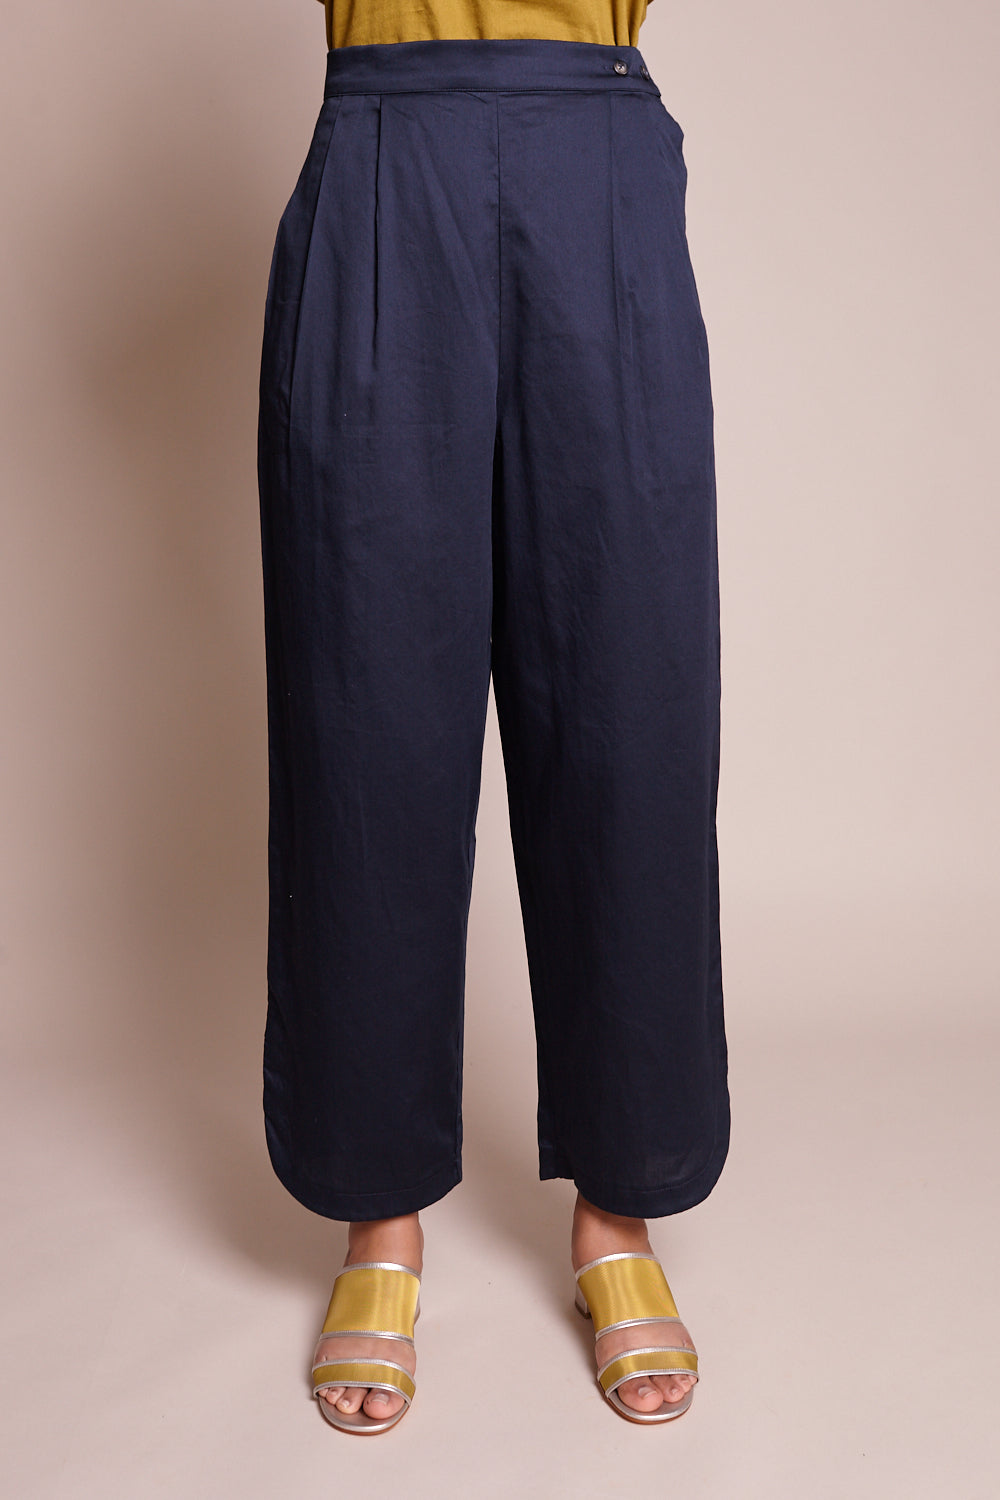 Black Crane Easy Pants in Dark Navy - Vert & Vogue